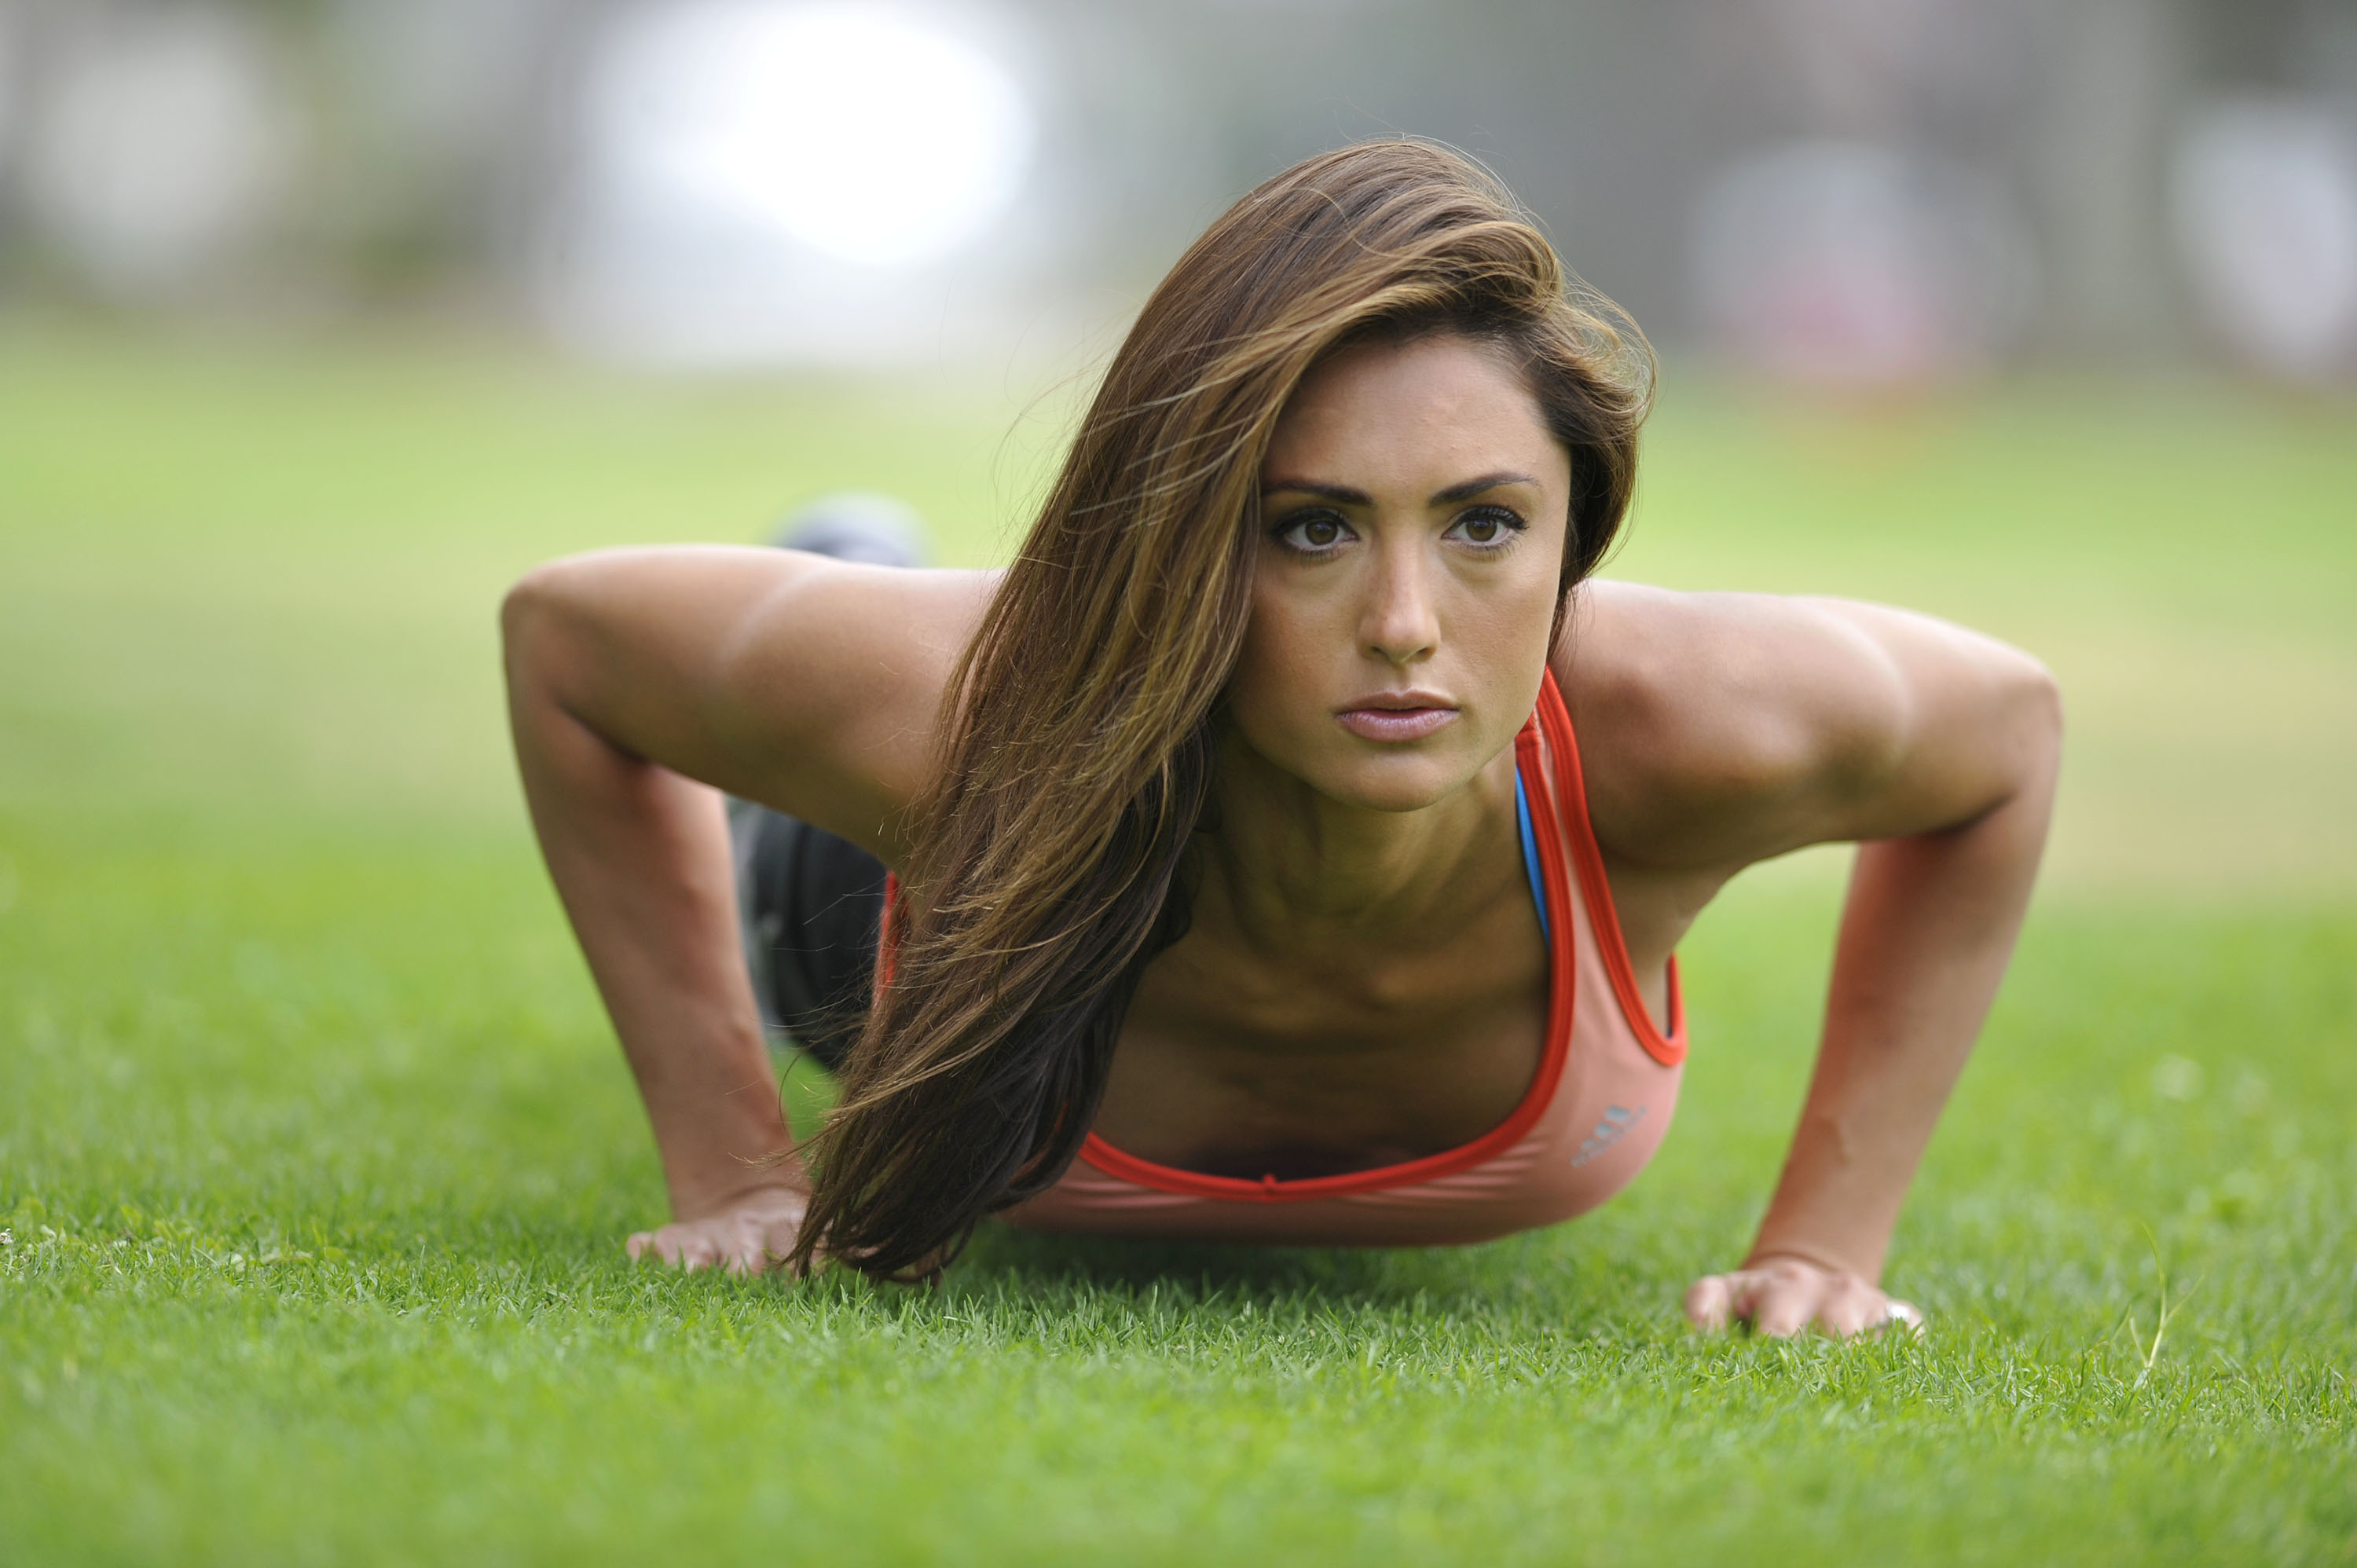 Katie Cleary nue Photos et Vidos de Katie Cleary Nue